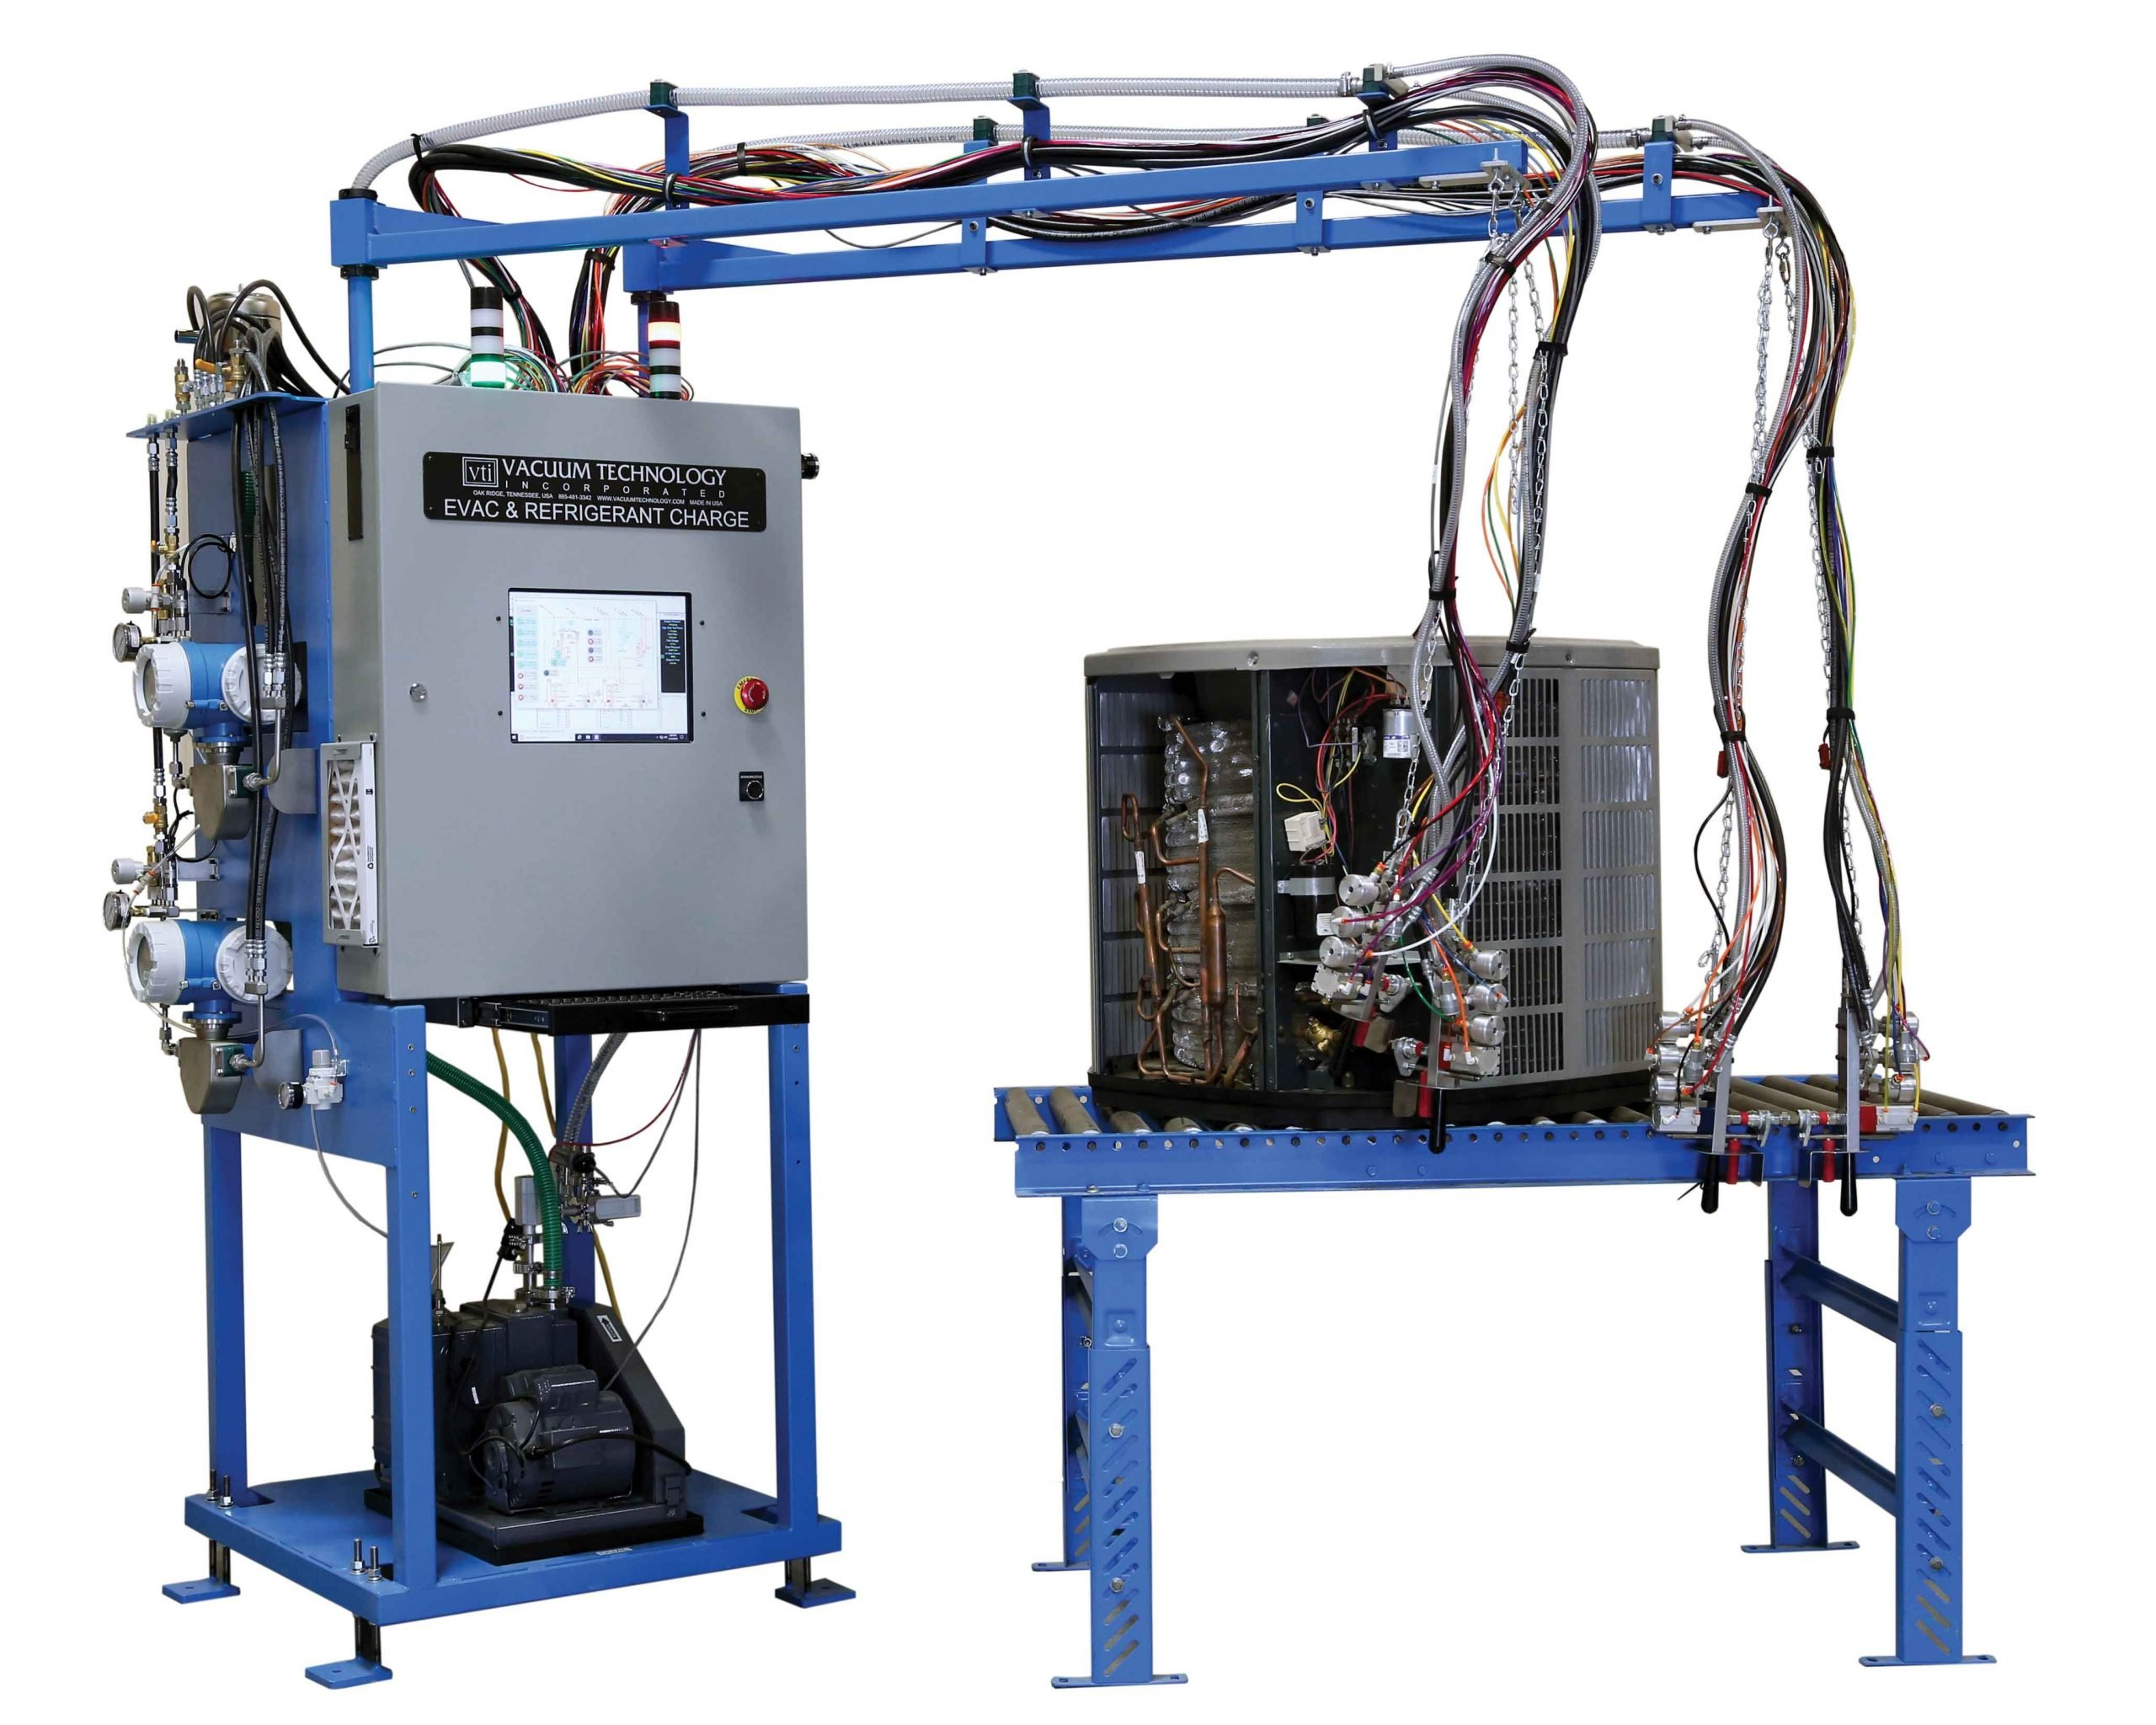 VTI's Evacuation and Dual Refrigerant Charge Station for Condensing Unit and Heat Pump Manufacturing